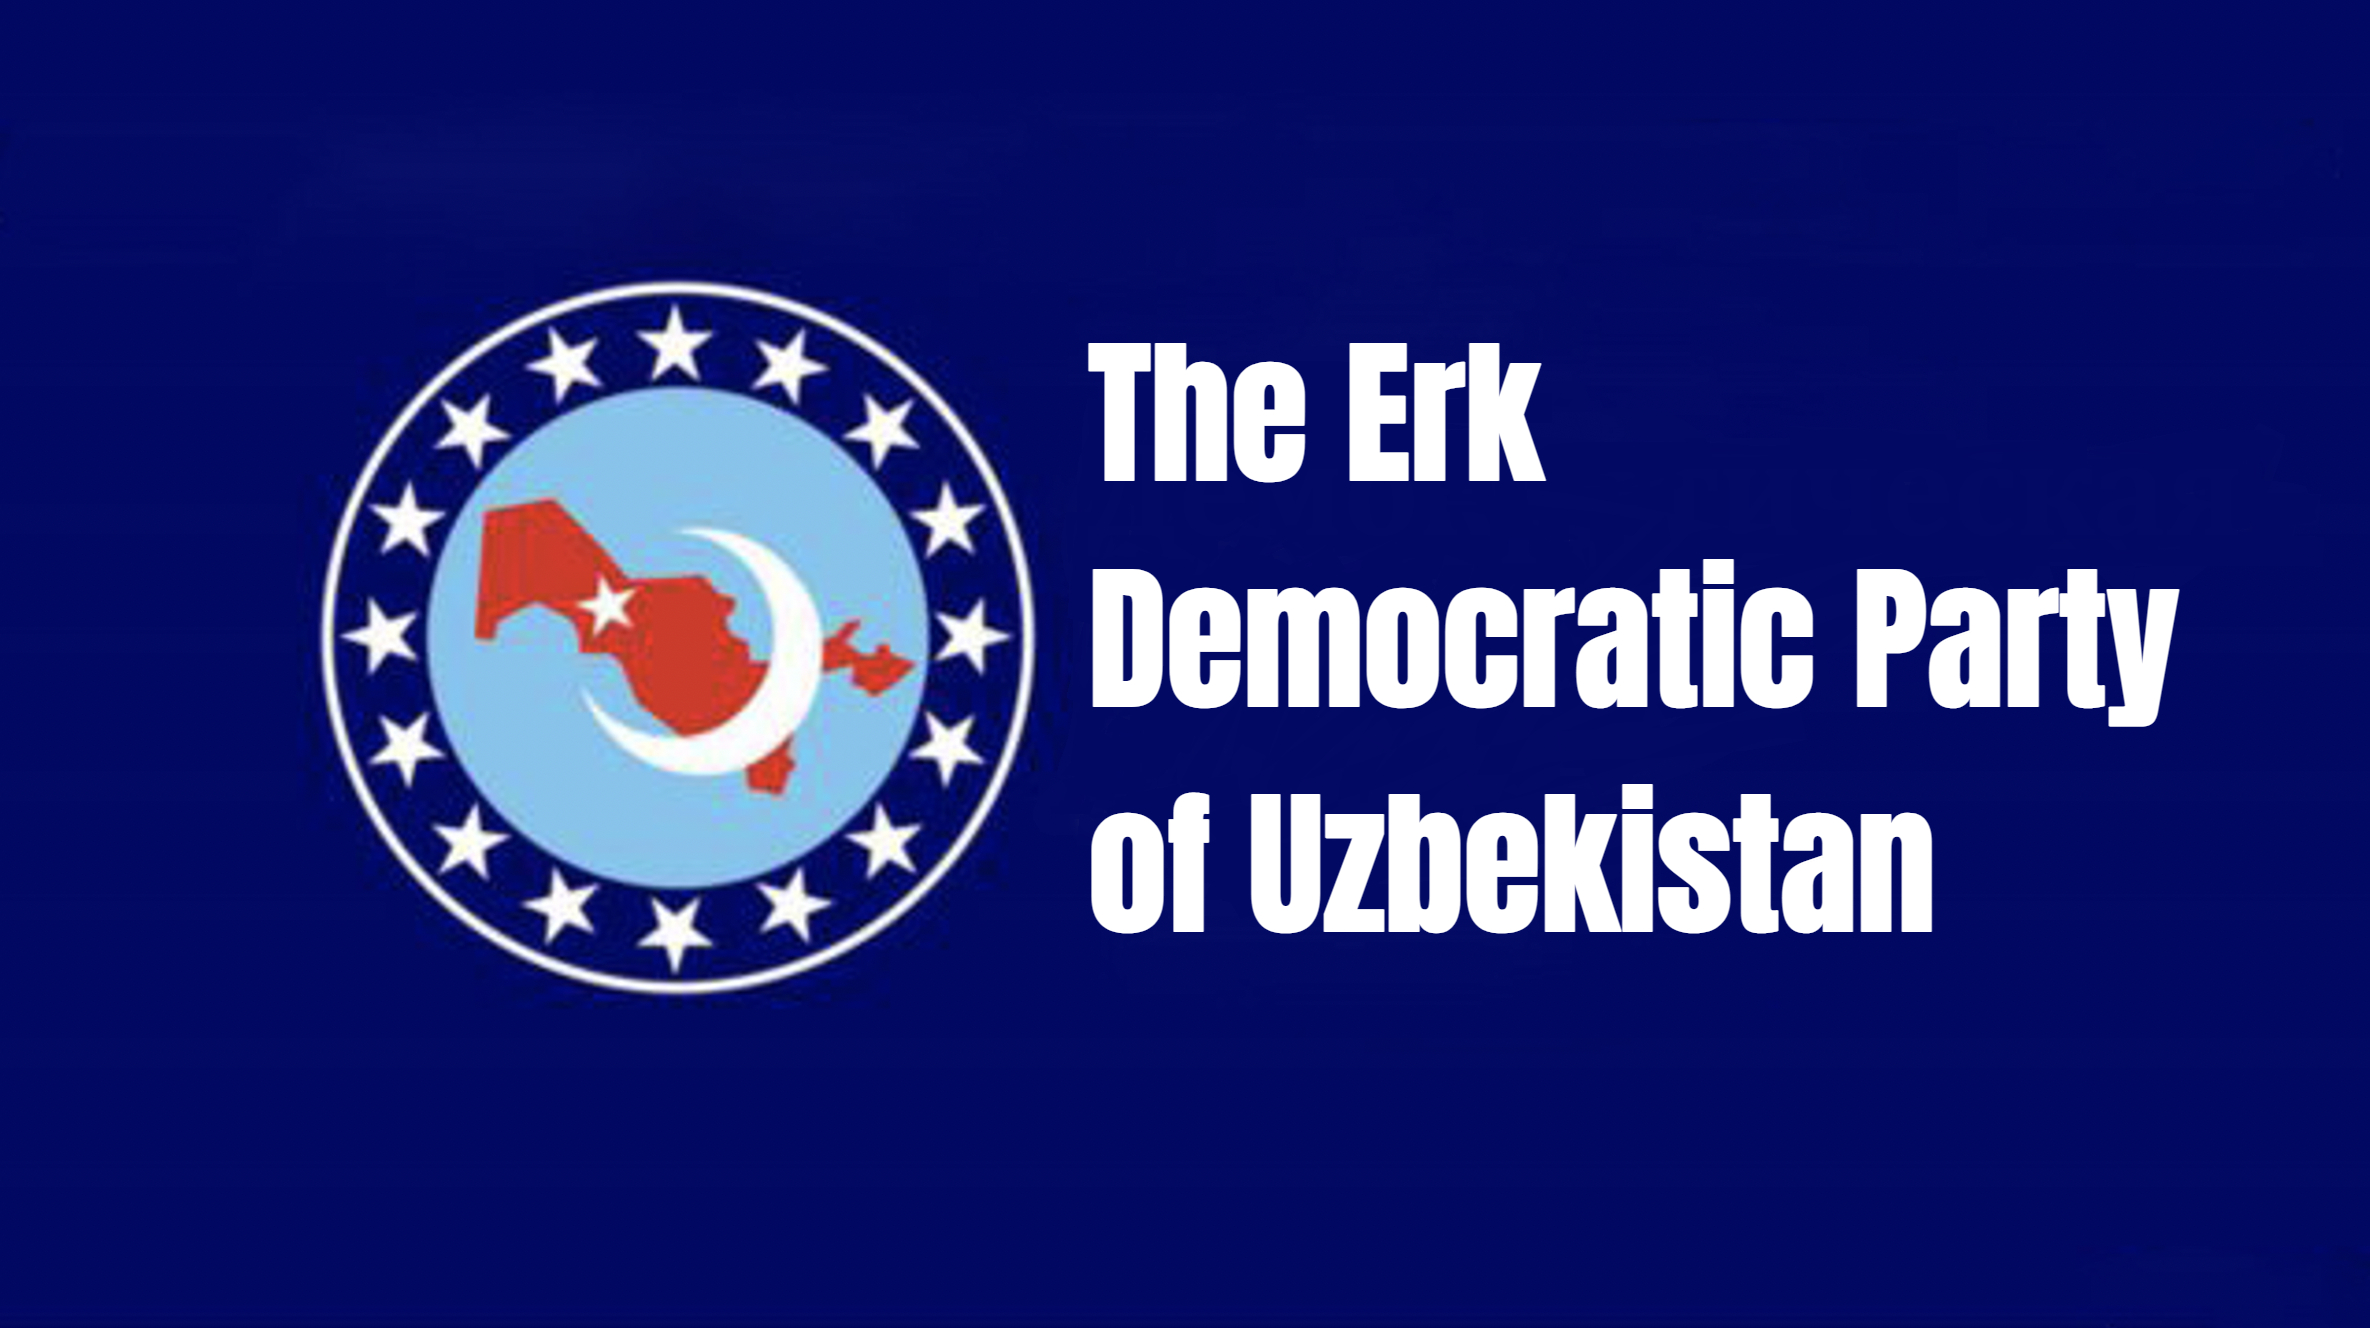 Statement of the Erk Democratic Party of Uzbekistan on the Presidential elections